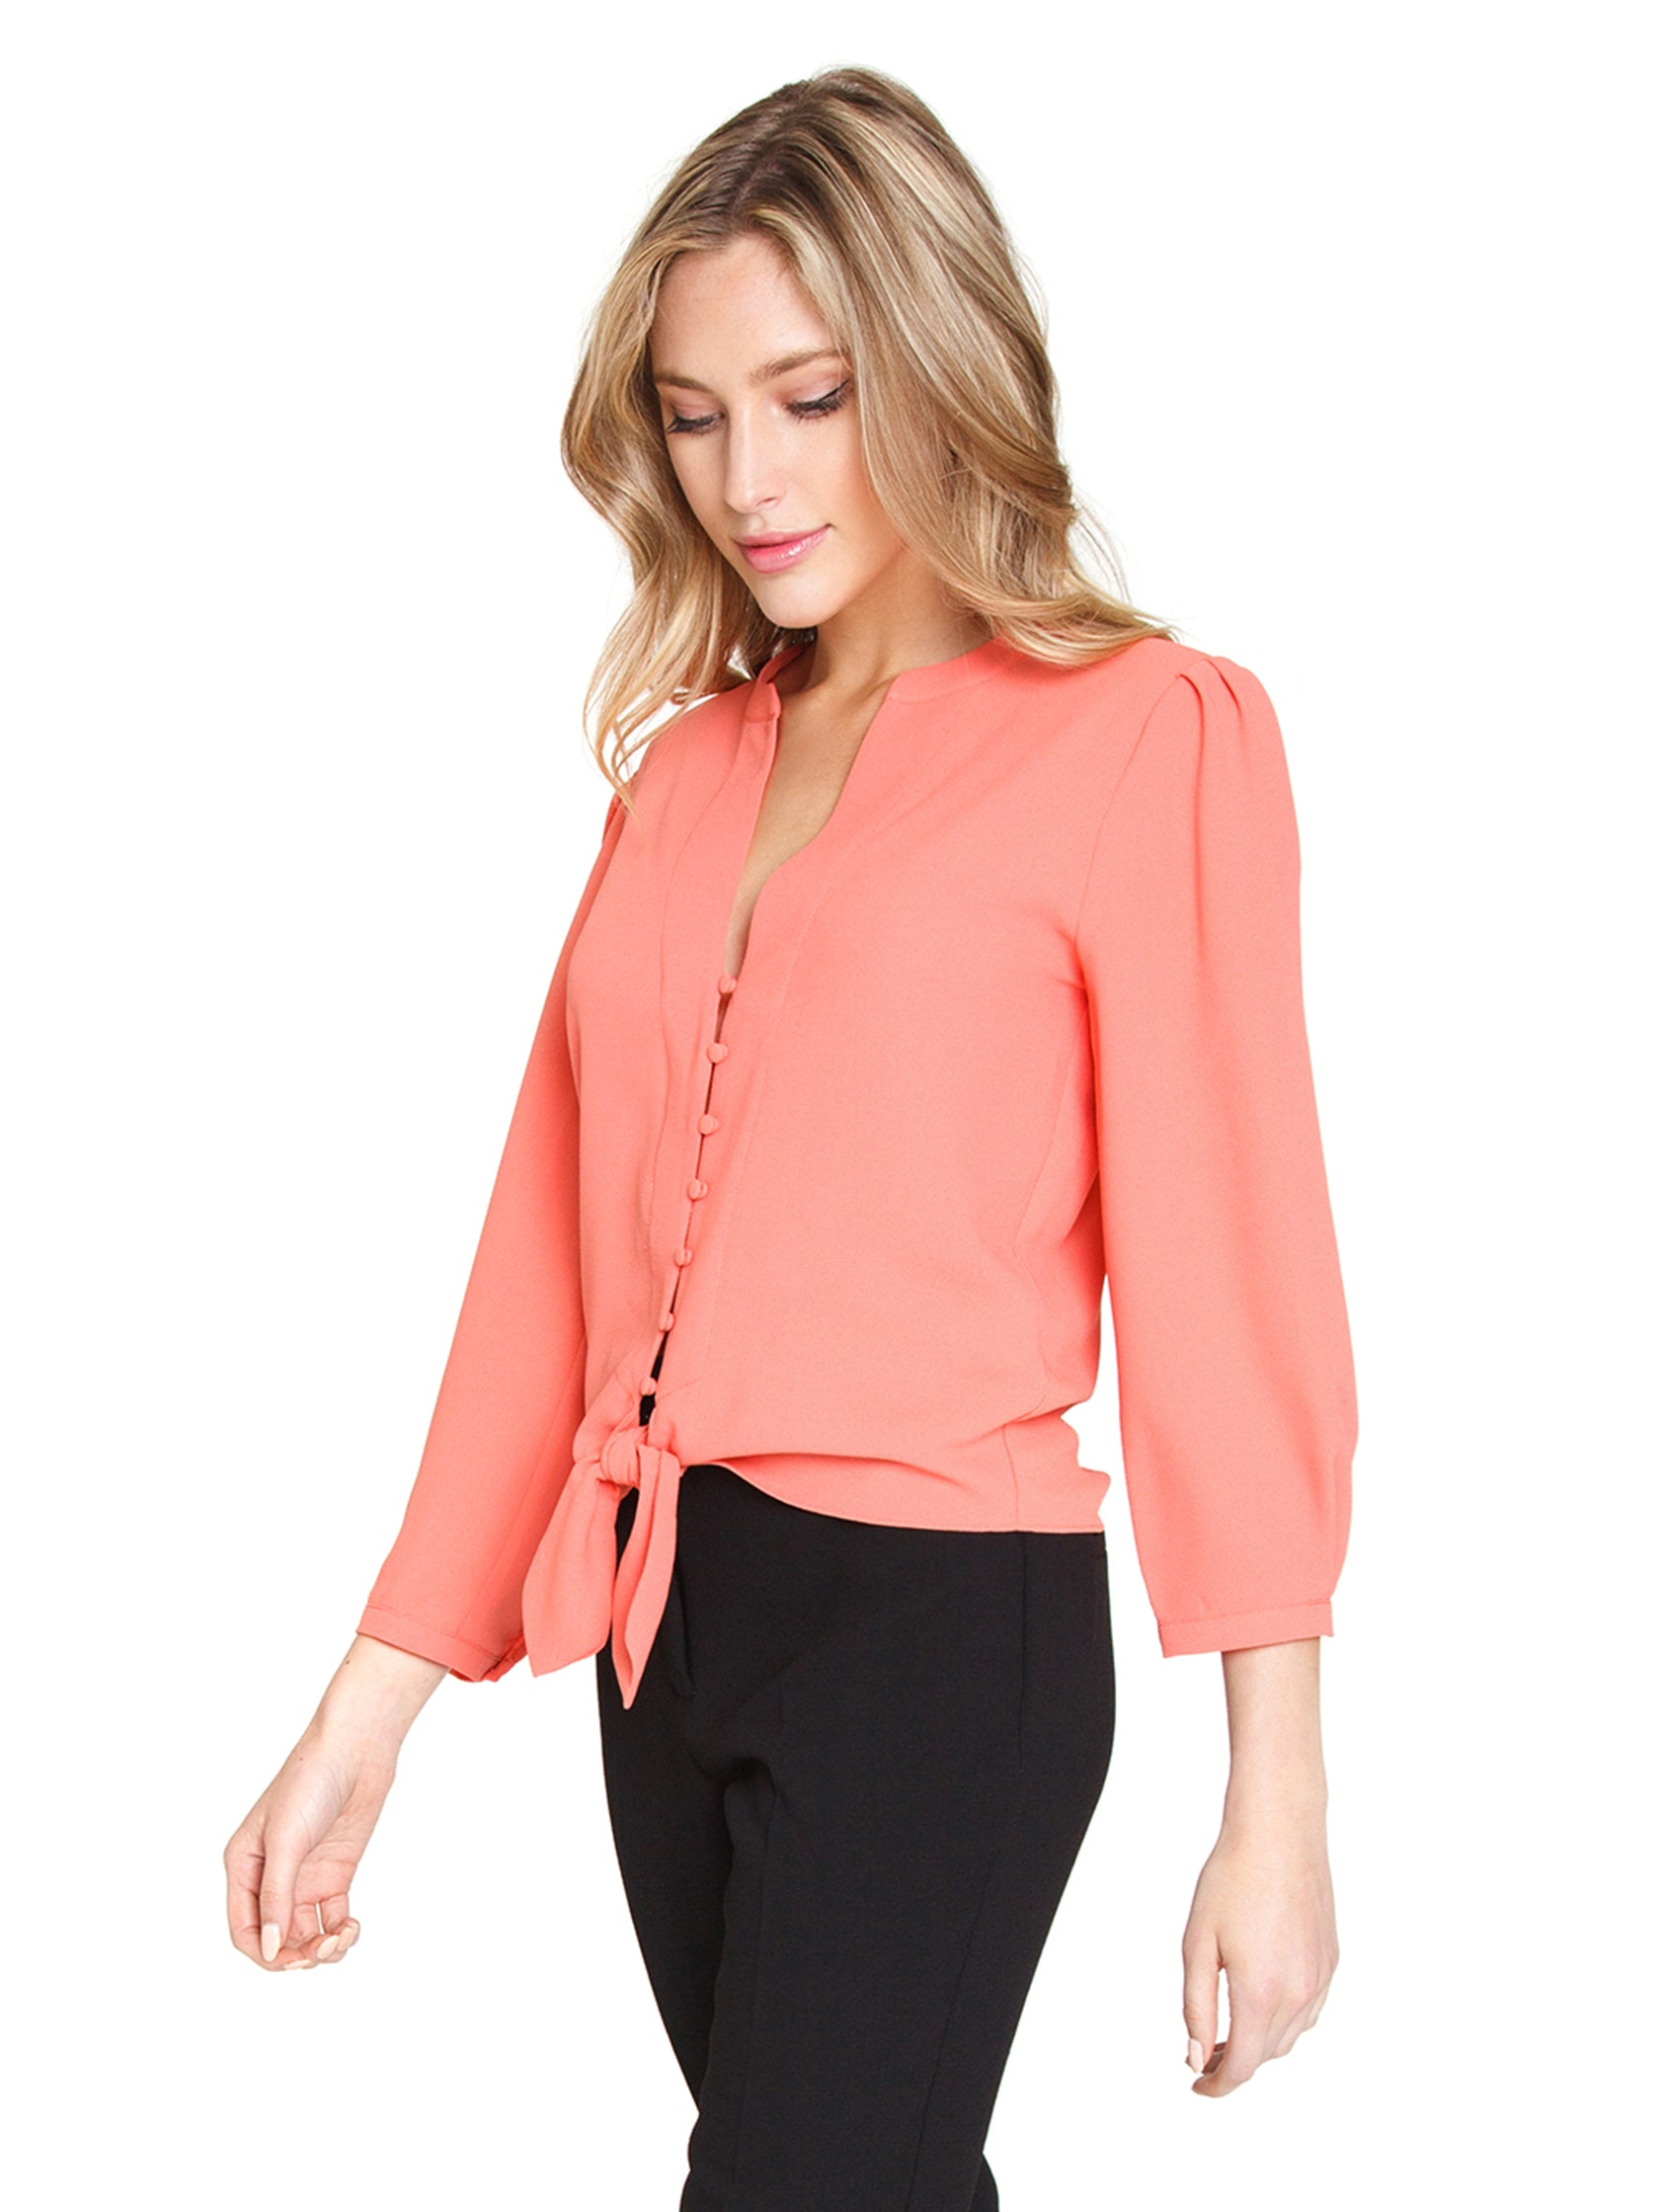 Women wearing a top rental from 1.STATE called Tie Front Blouse